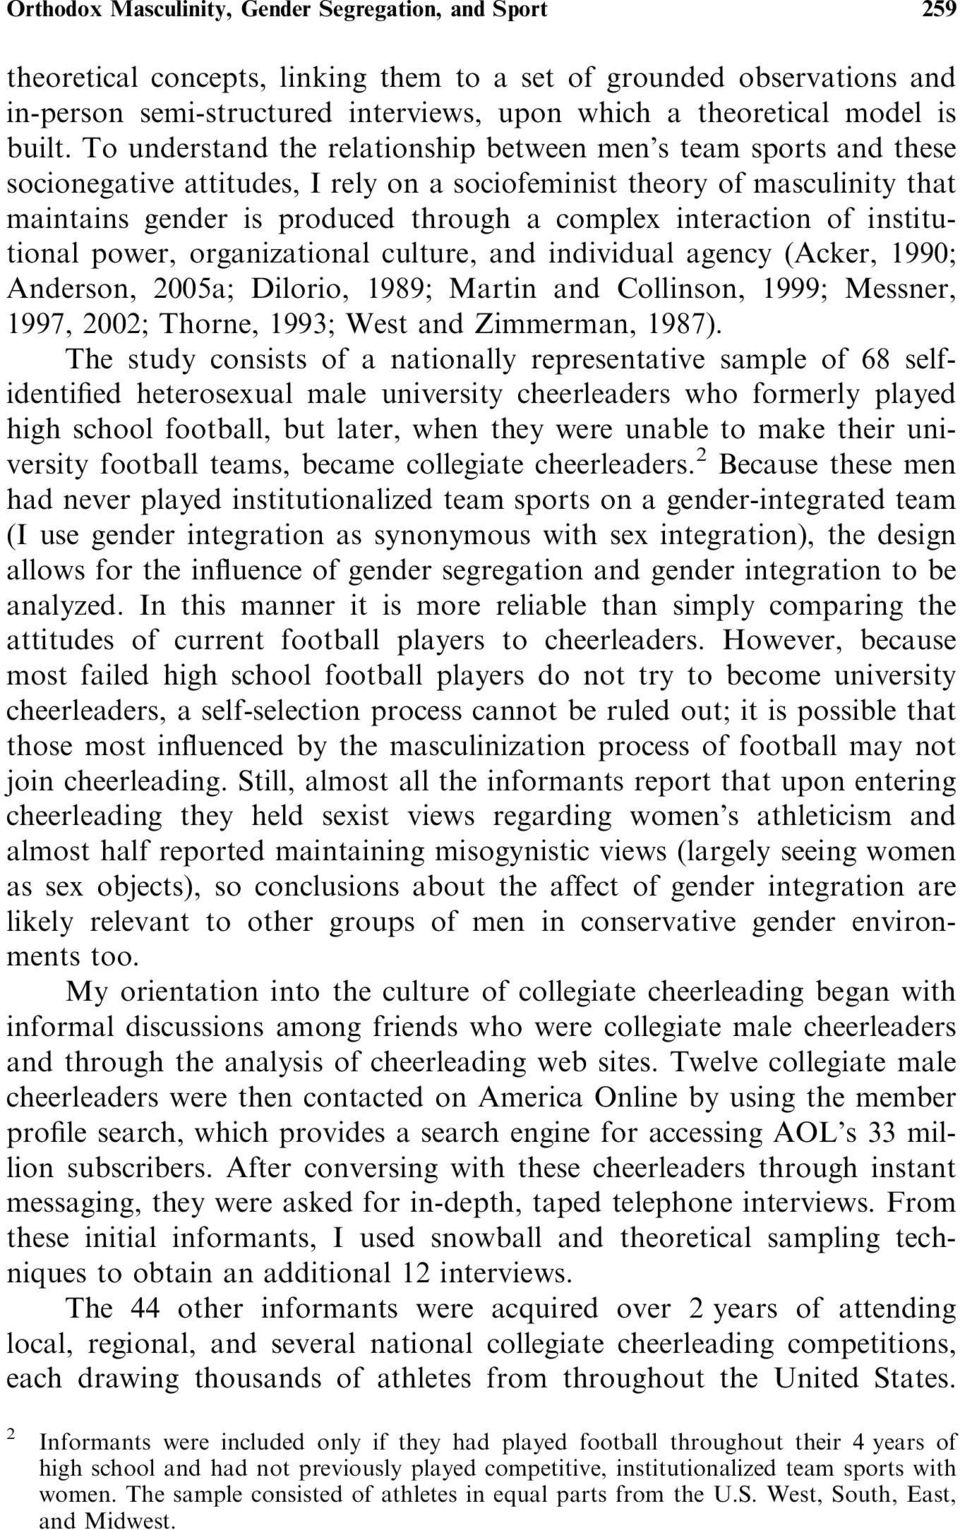 To understand the relationship between men s team sports and these socionegative attitudes, I rely on a sociofeminist theory of masculinity that maintains gender is produced through a complex